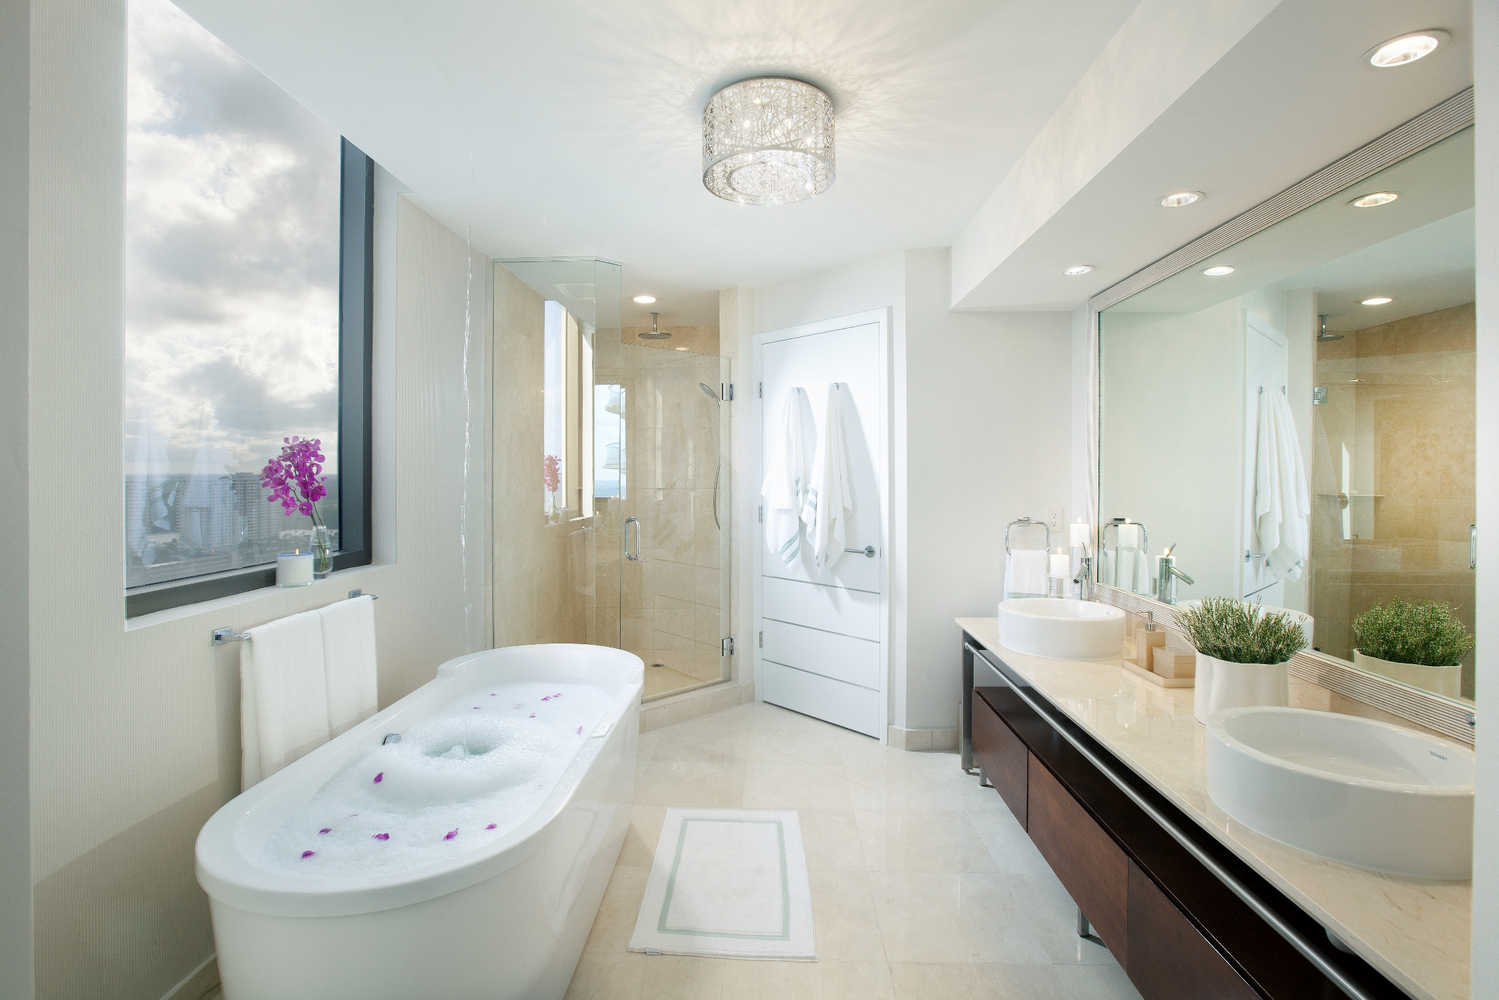 Master Bathrooms - Residential Interior Design From DKOR Interiors